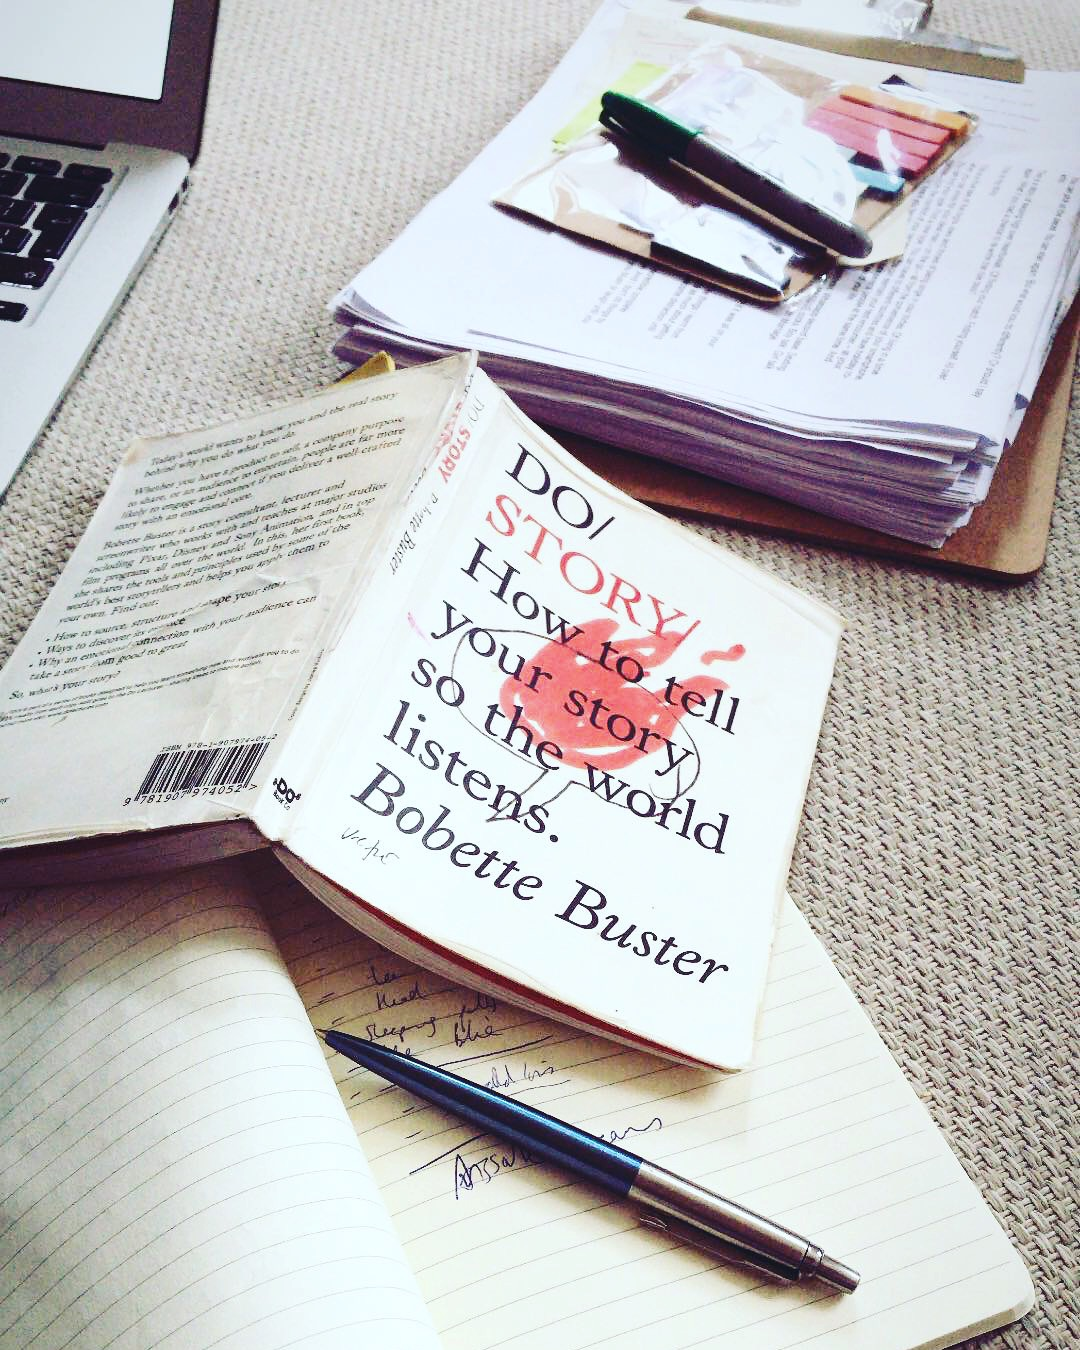 Time to write! Do Story by Bobette Buster is a great resource for anyone wishing to write a book